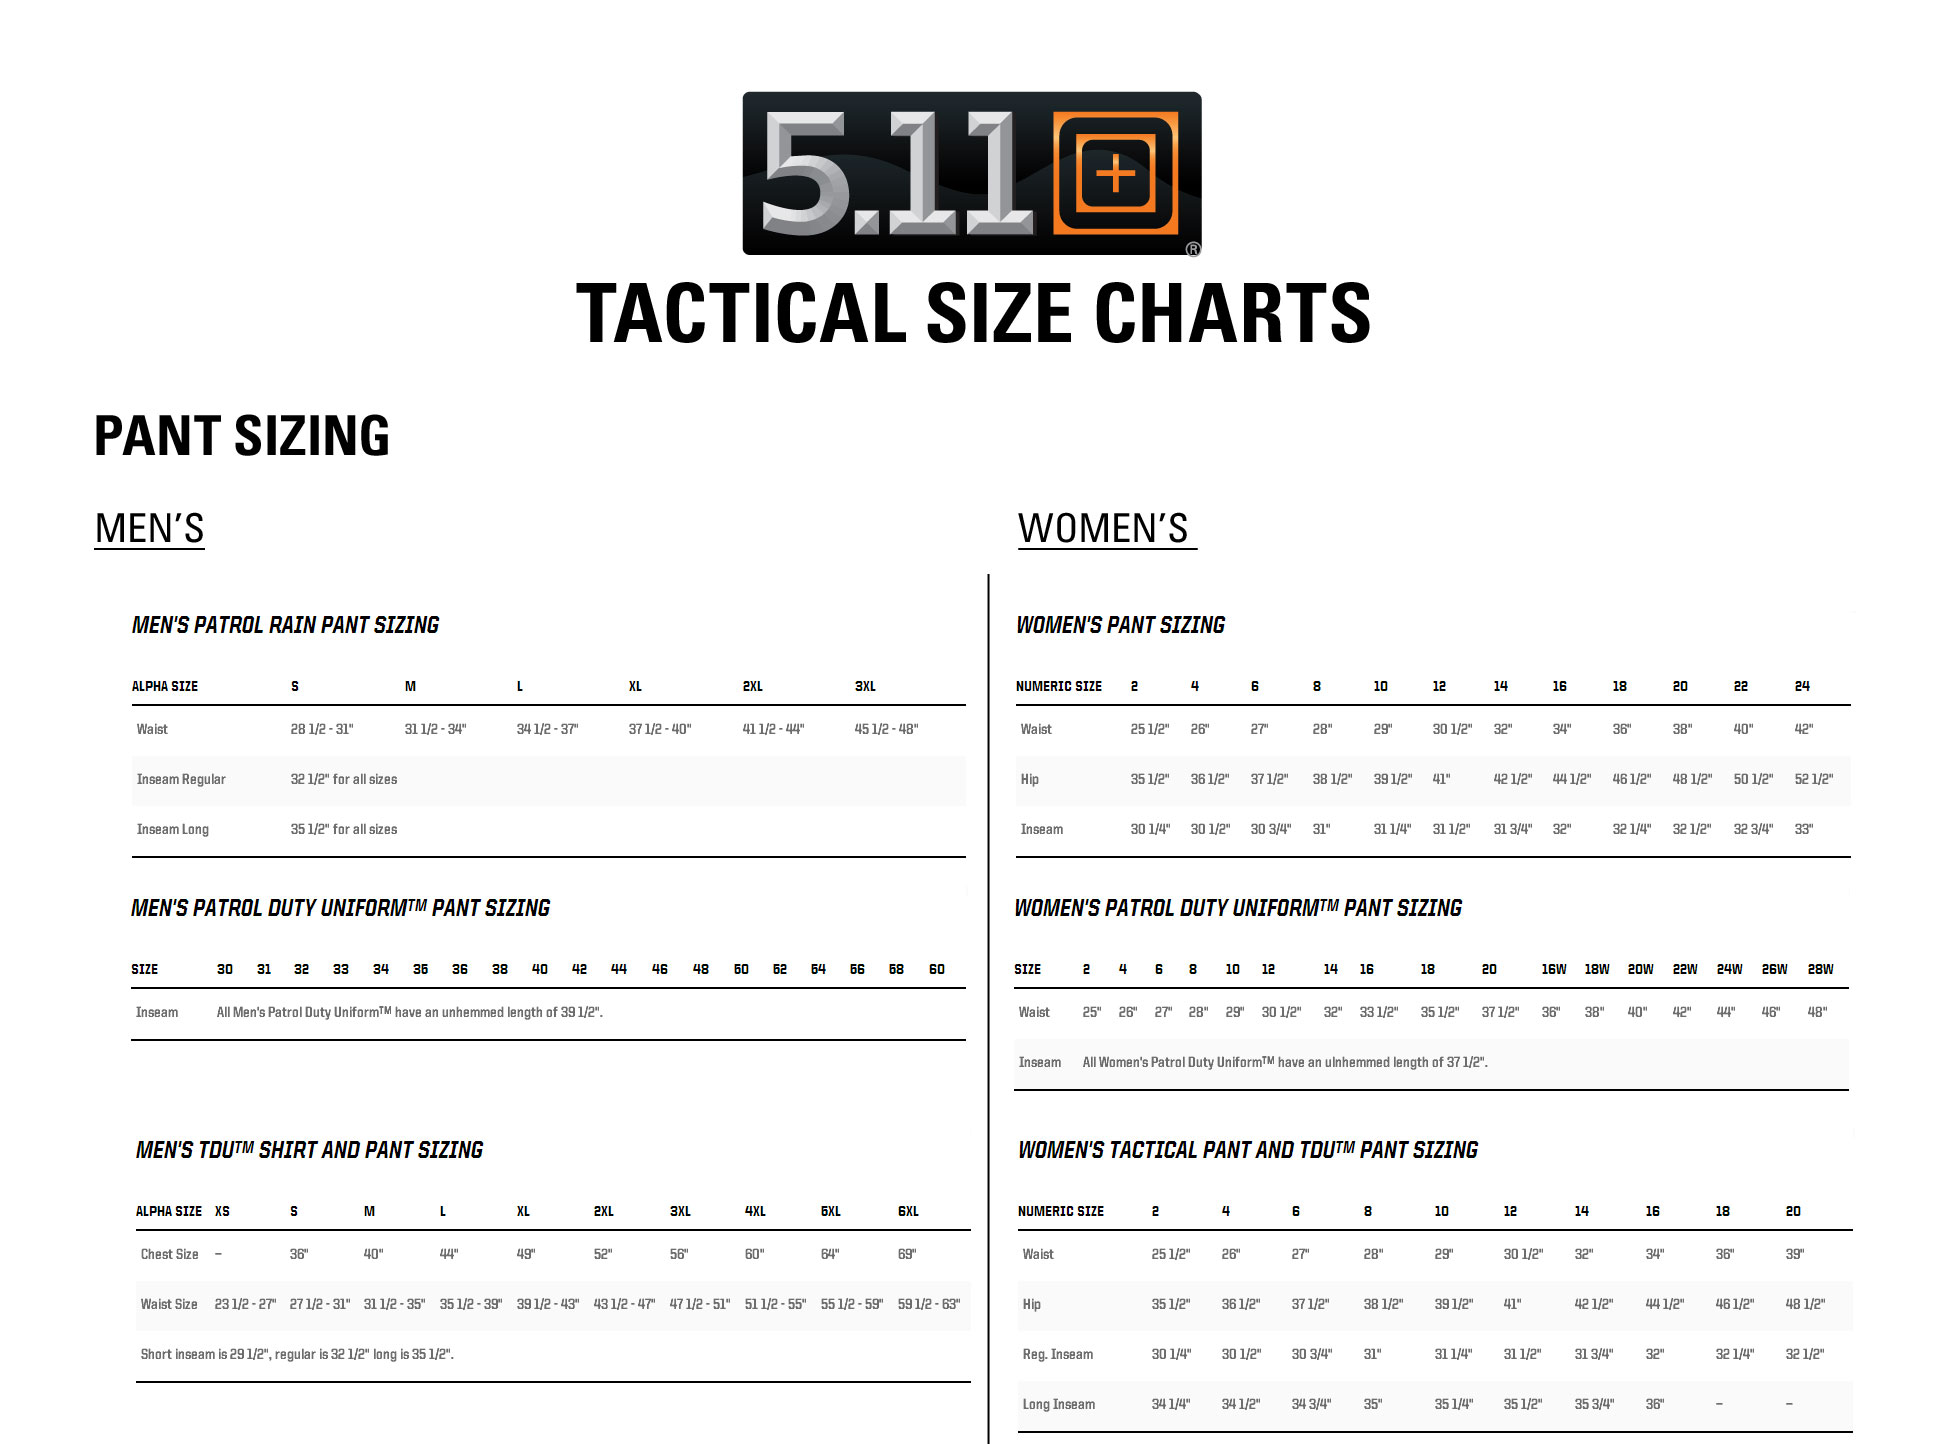 This includes tracking mentions of Tactical coupons on social media outlets like Twitter and Instagram, visiting blogs and forums related to Tactical products and services, and scouring top deal sites for the latest Tactical promo codes.